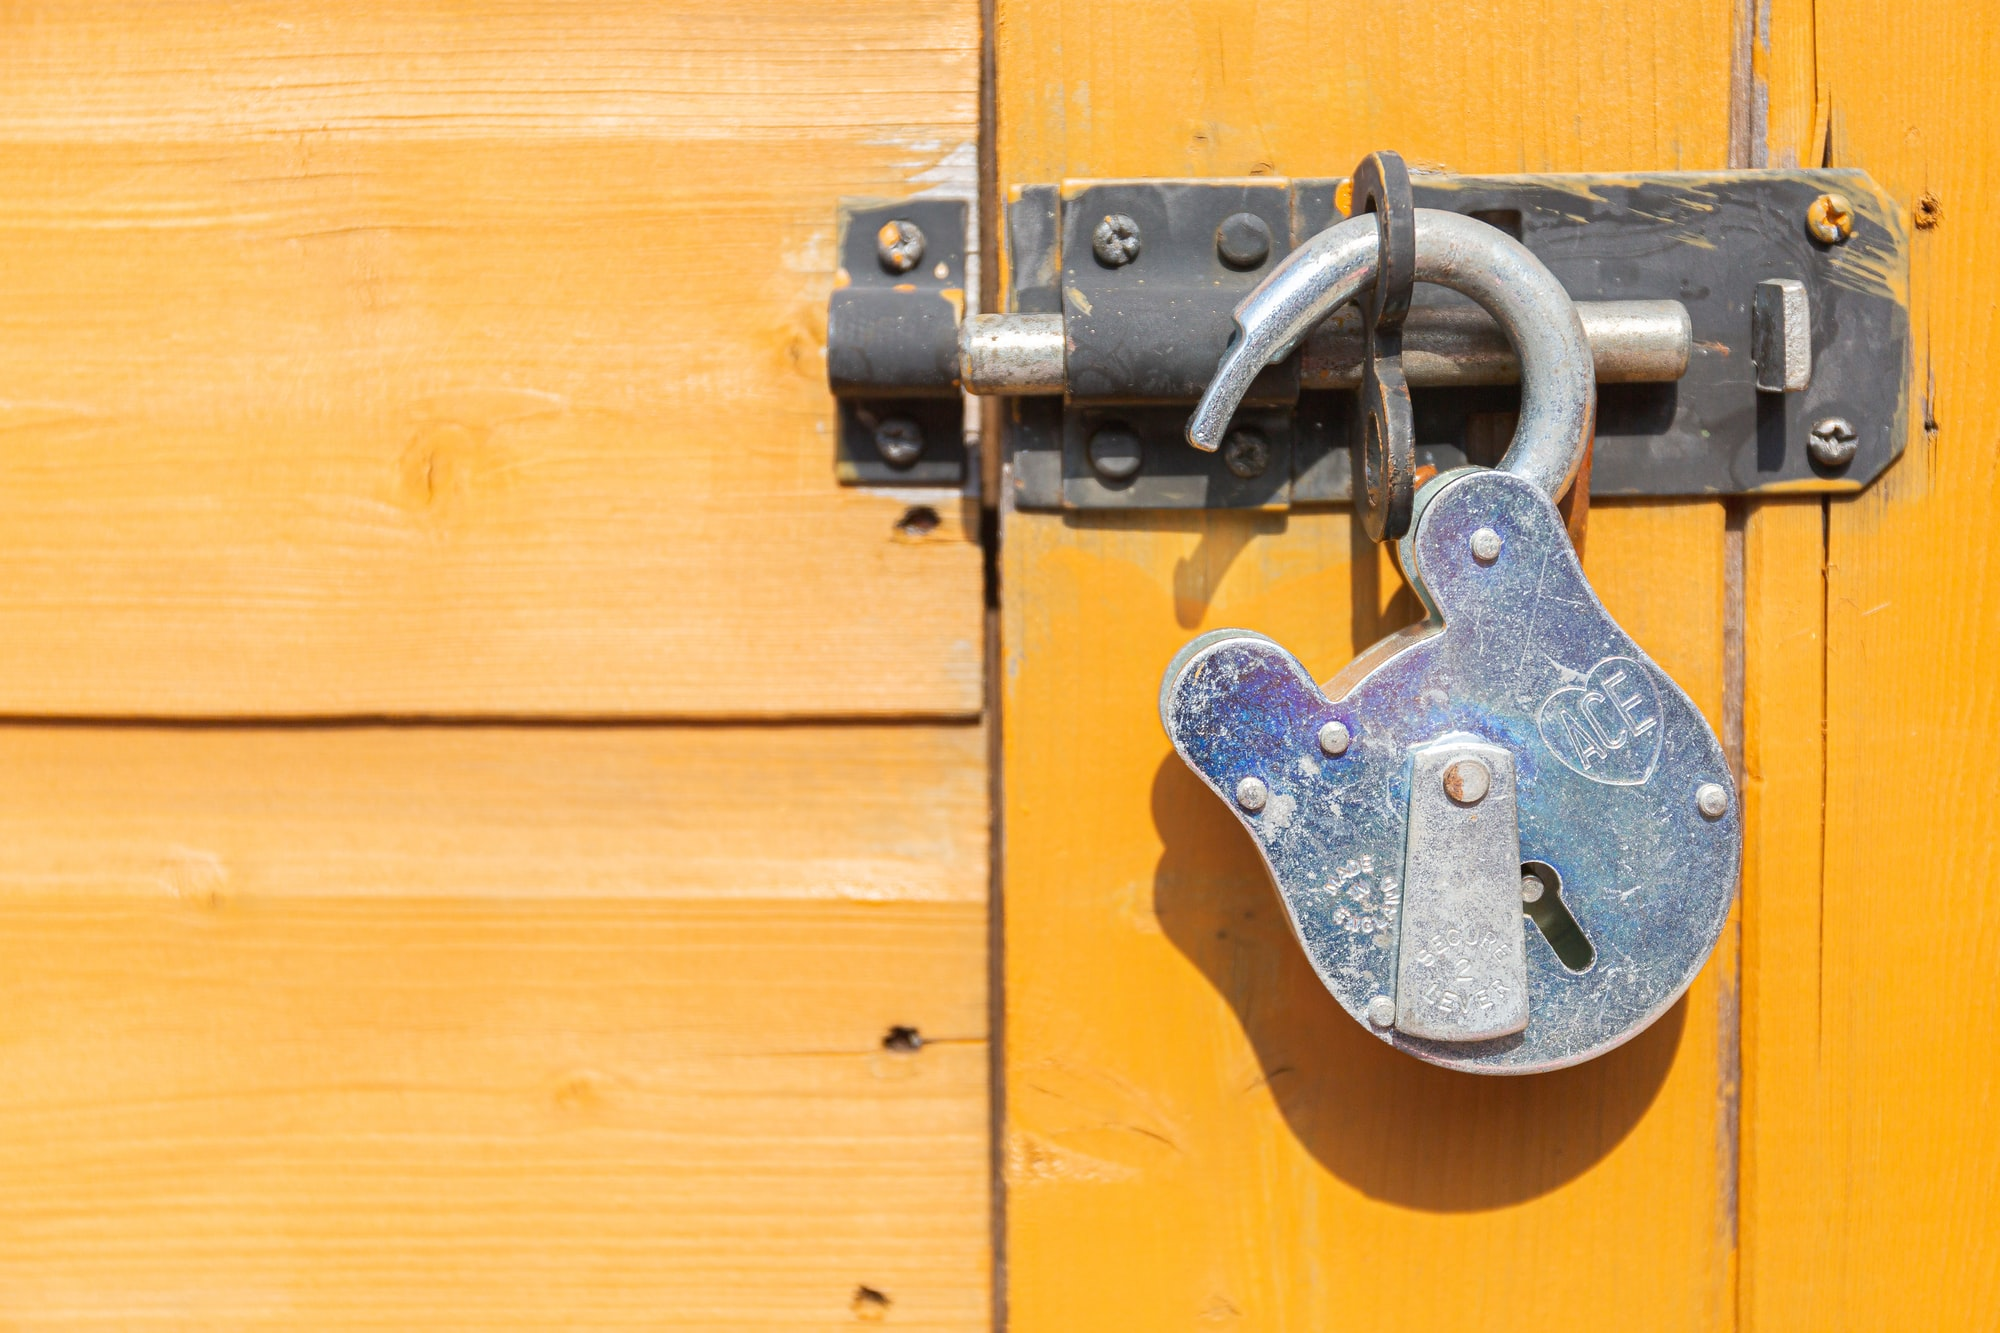 Unlocked old fashioned padlock. Just when will lockdown end?